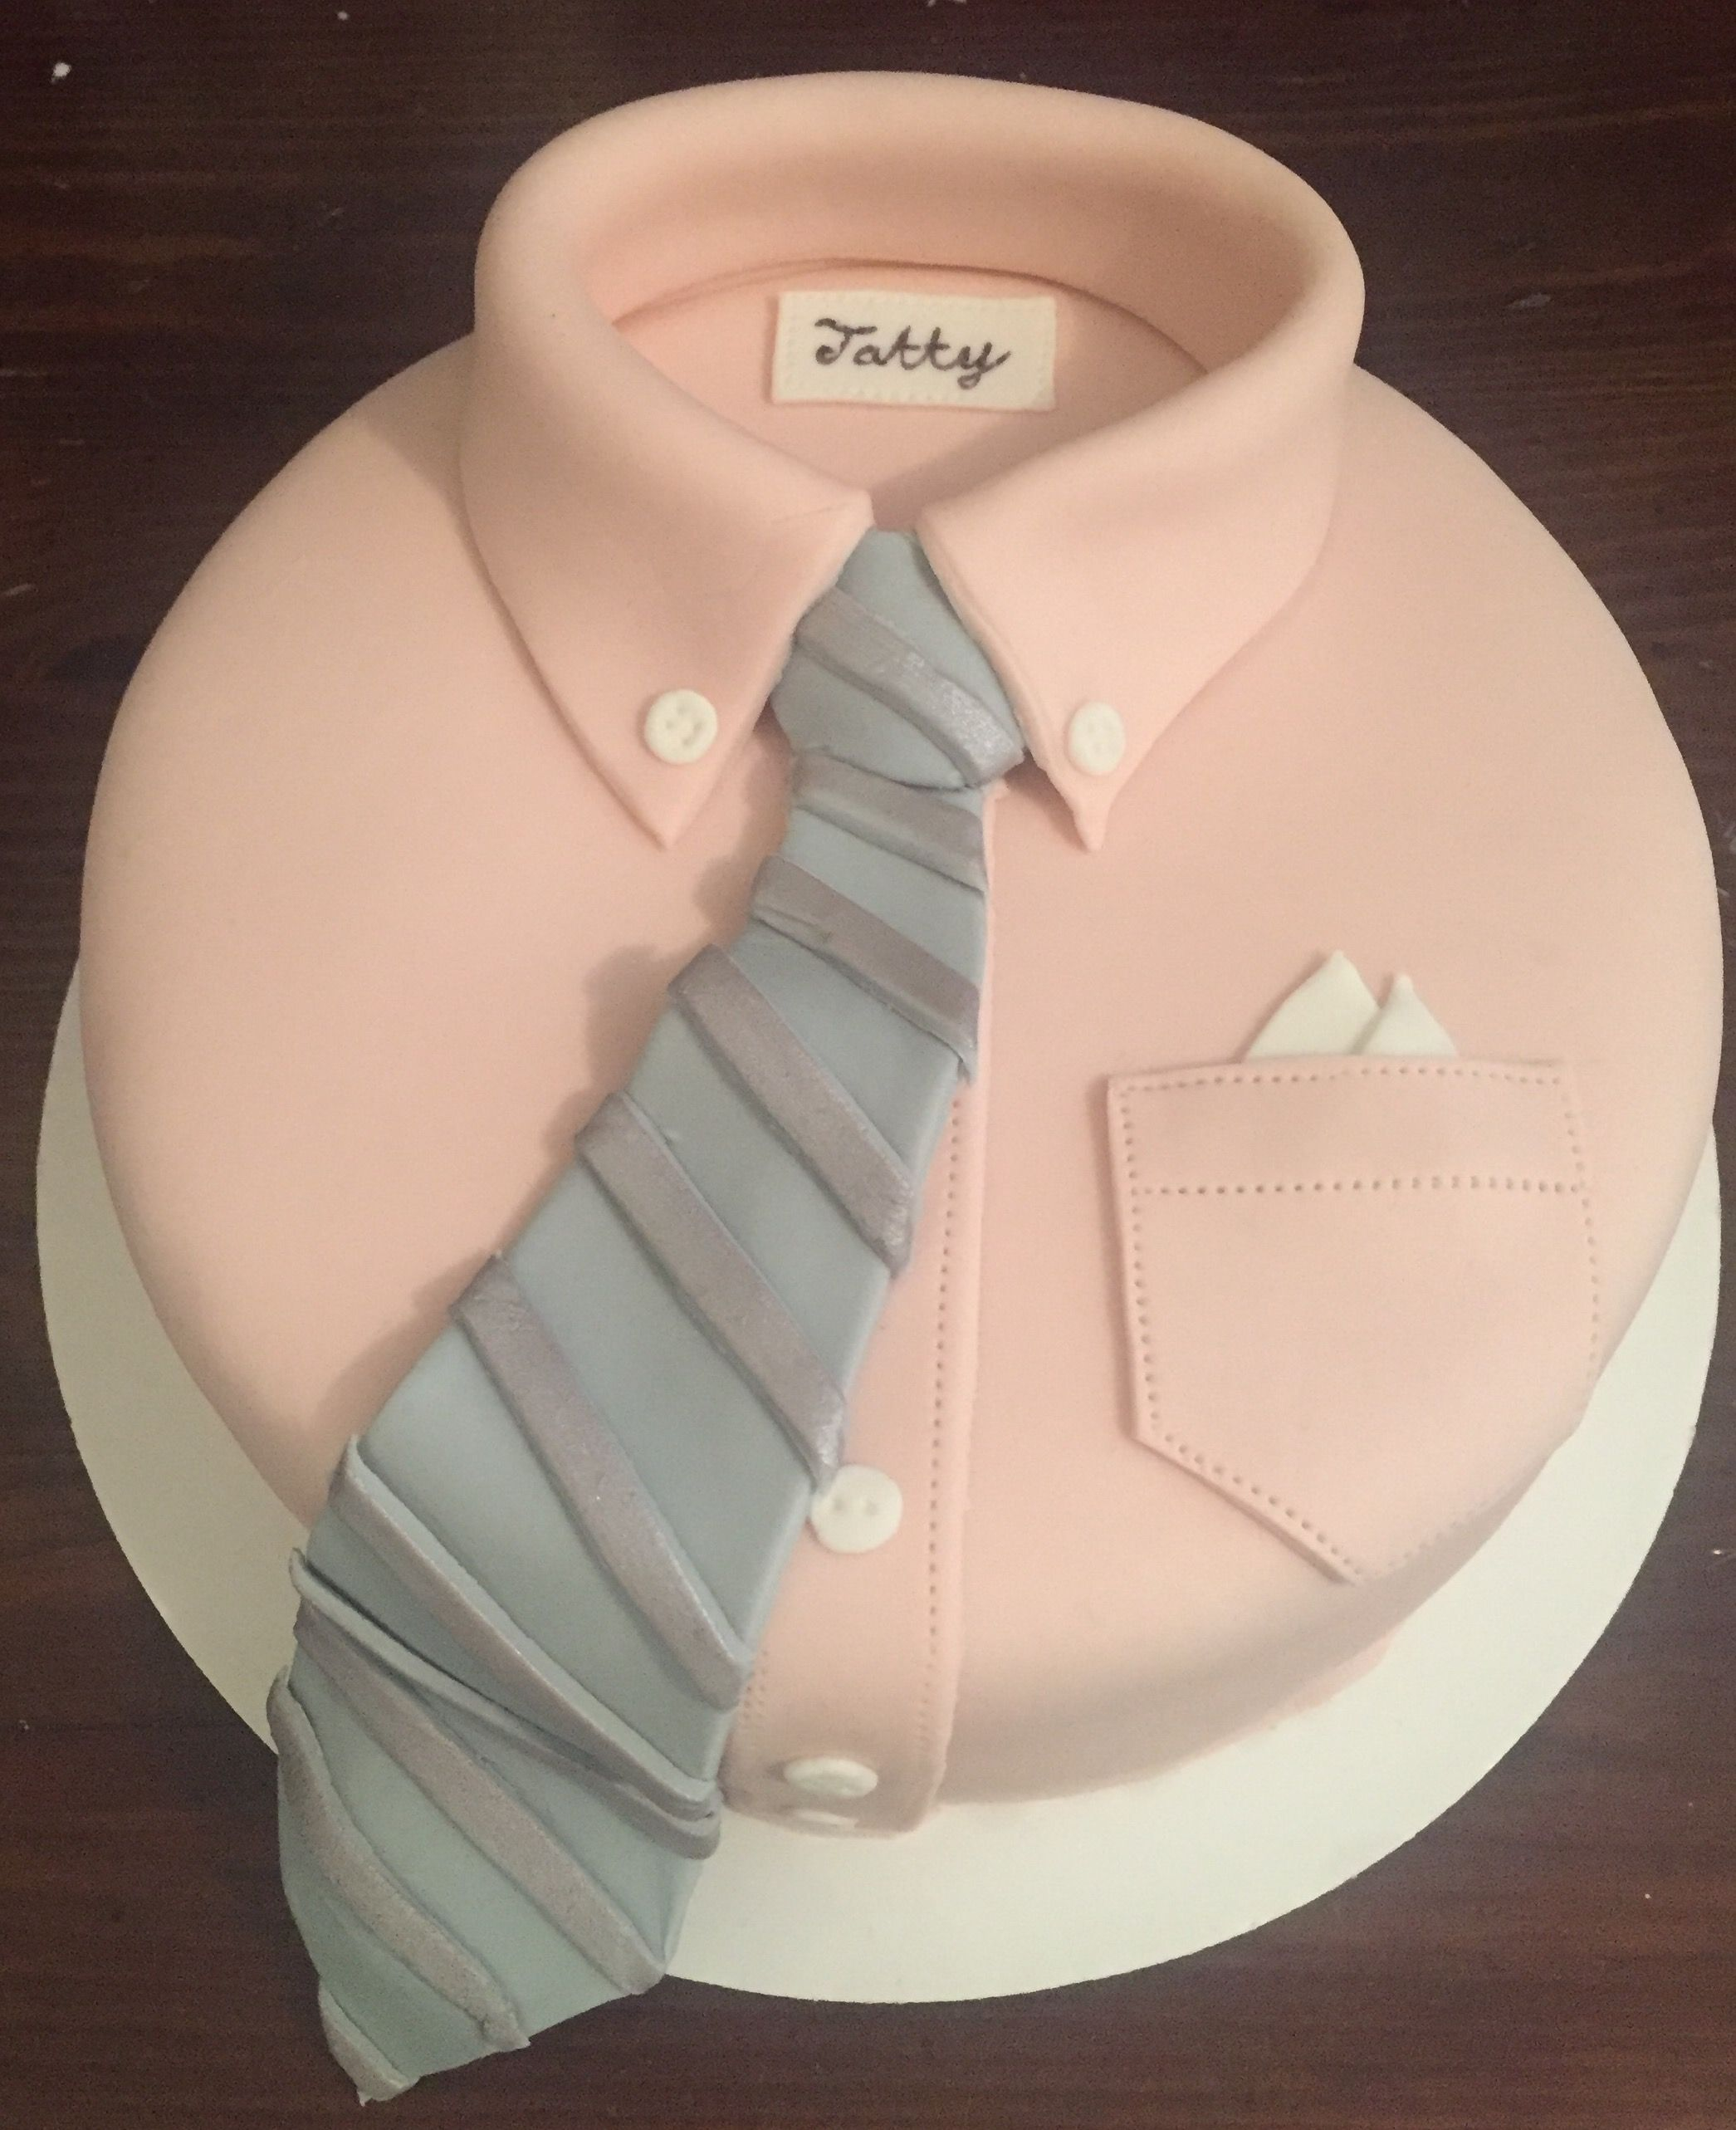 I Cannot Believe This Cake Lmao Tina Munoz Why Haven T You